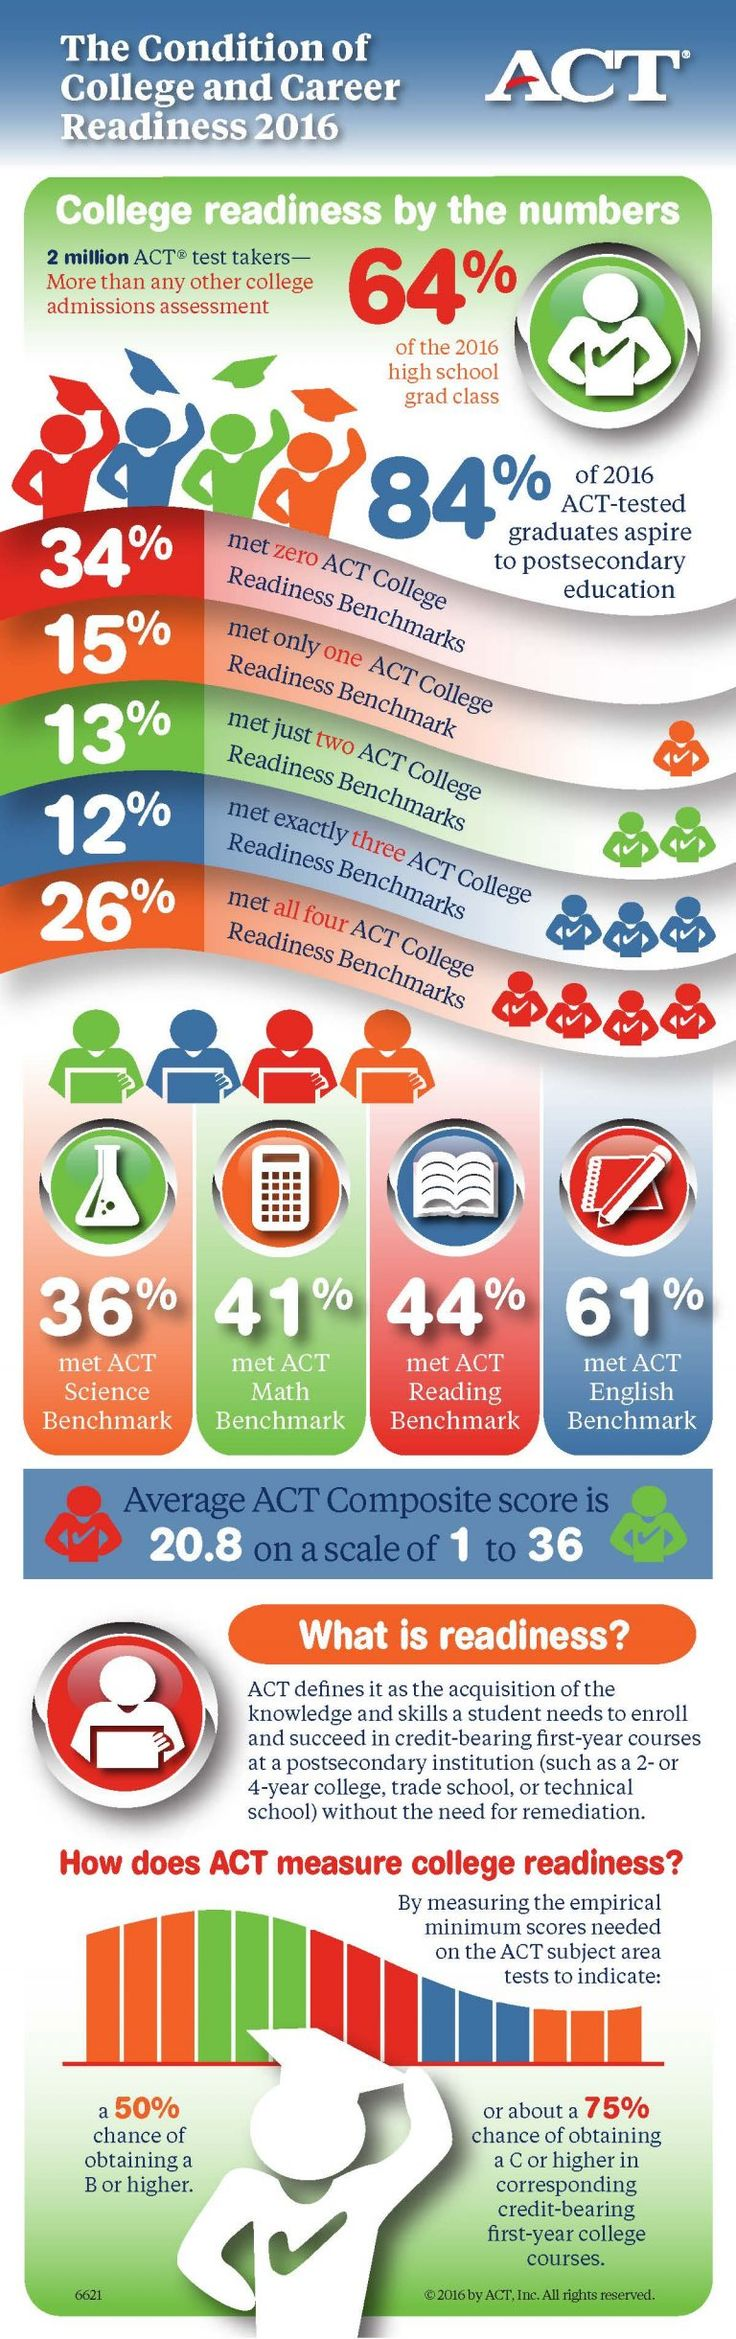 The Condition of College and Career Readiness 2016: 34% met zero ACT College Readiness Benchmarks. 26% met all four bookmarks.